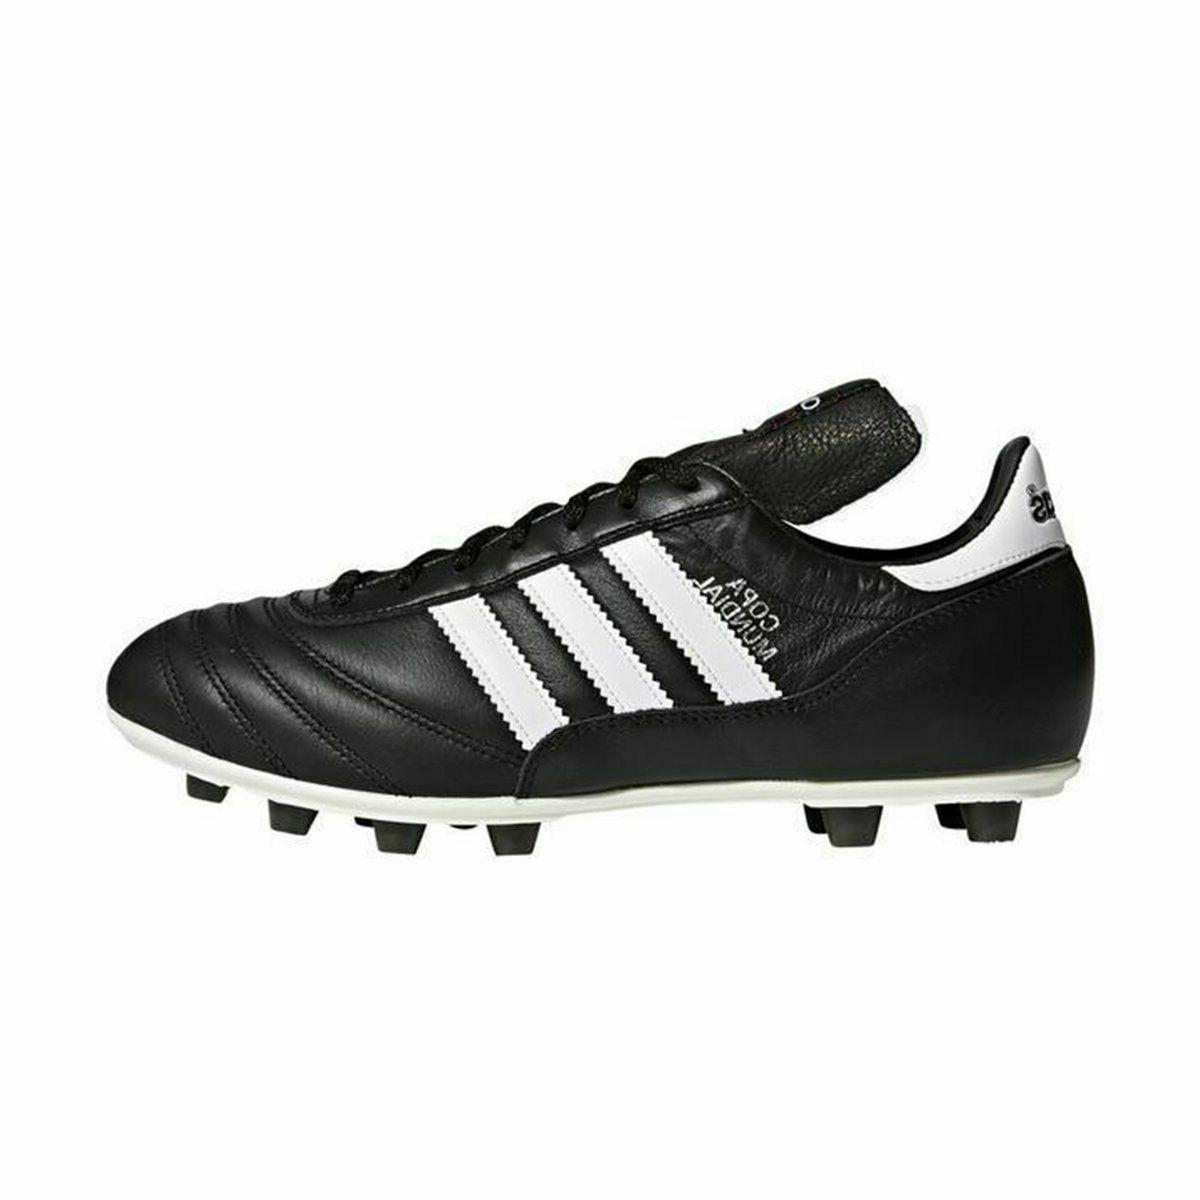 Adidas Copa Mundial Soccer Cleats - Black - NEW IN BOX -FREE